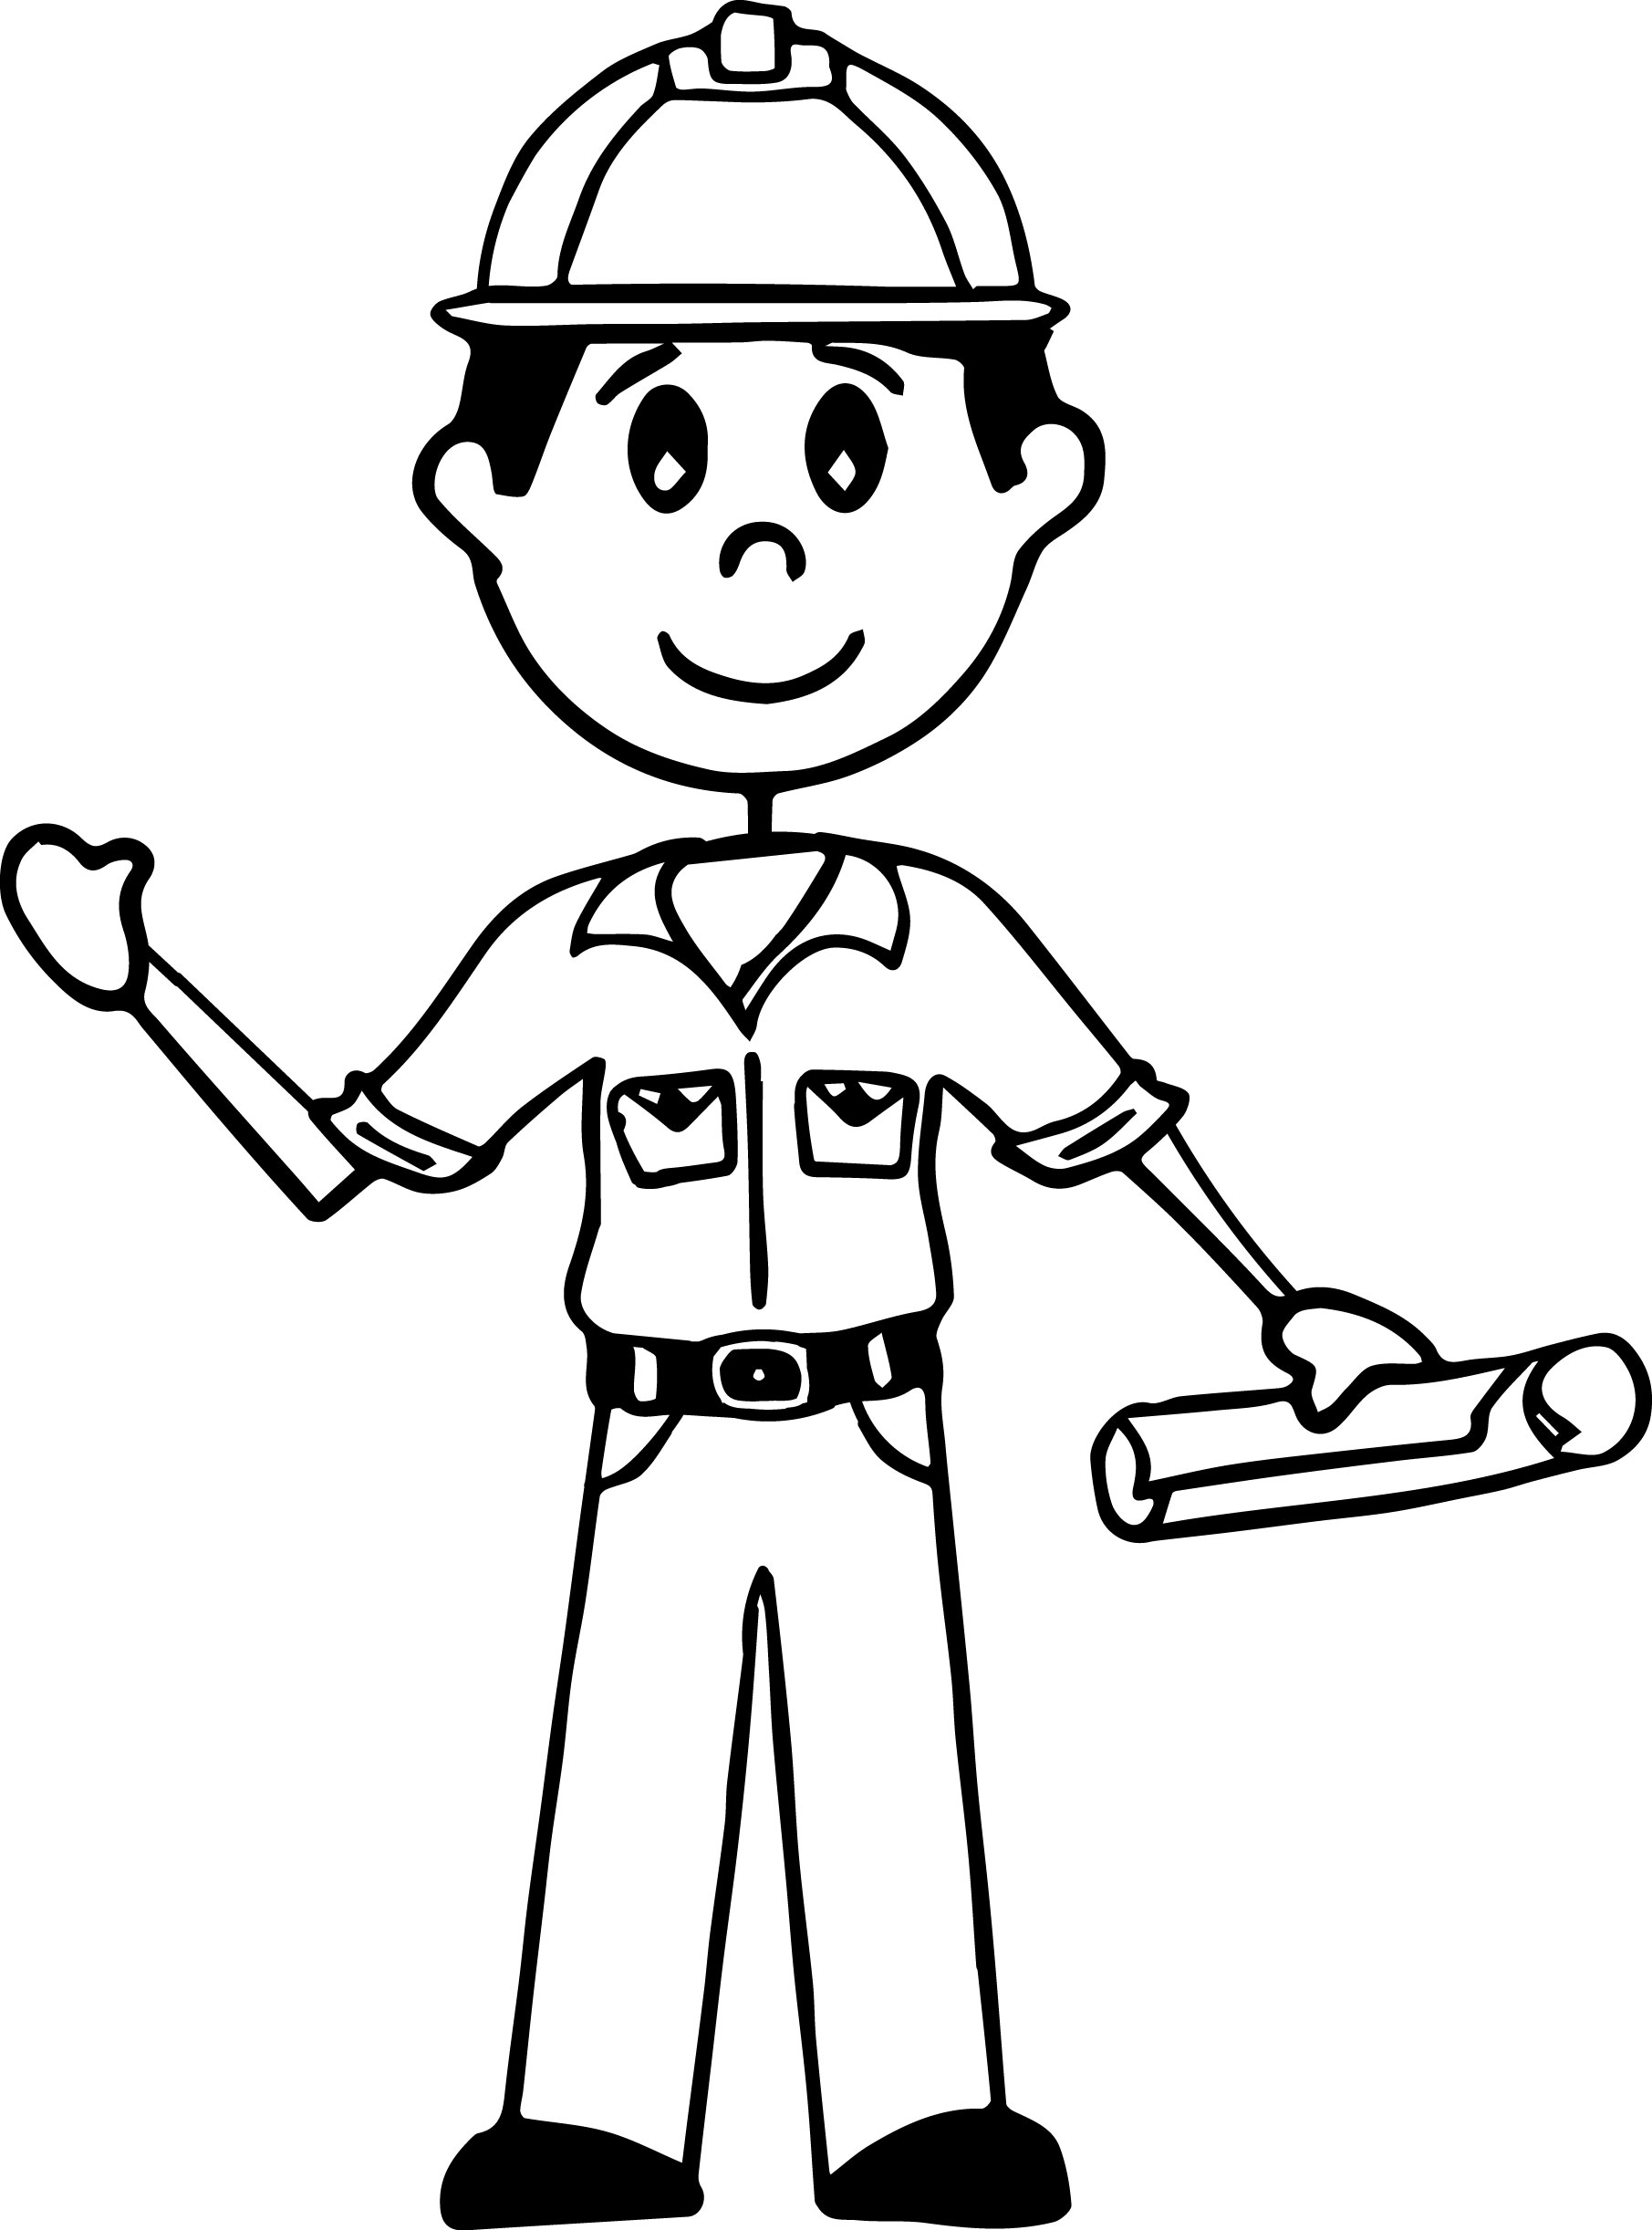 1811x2444 Drawing Stick Line Man For Free Download